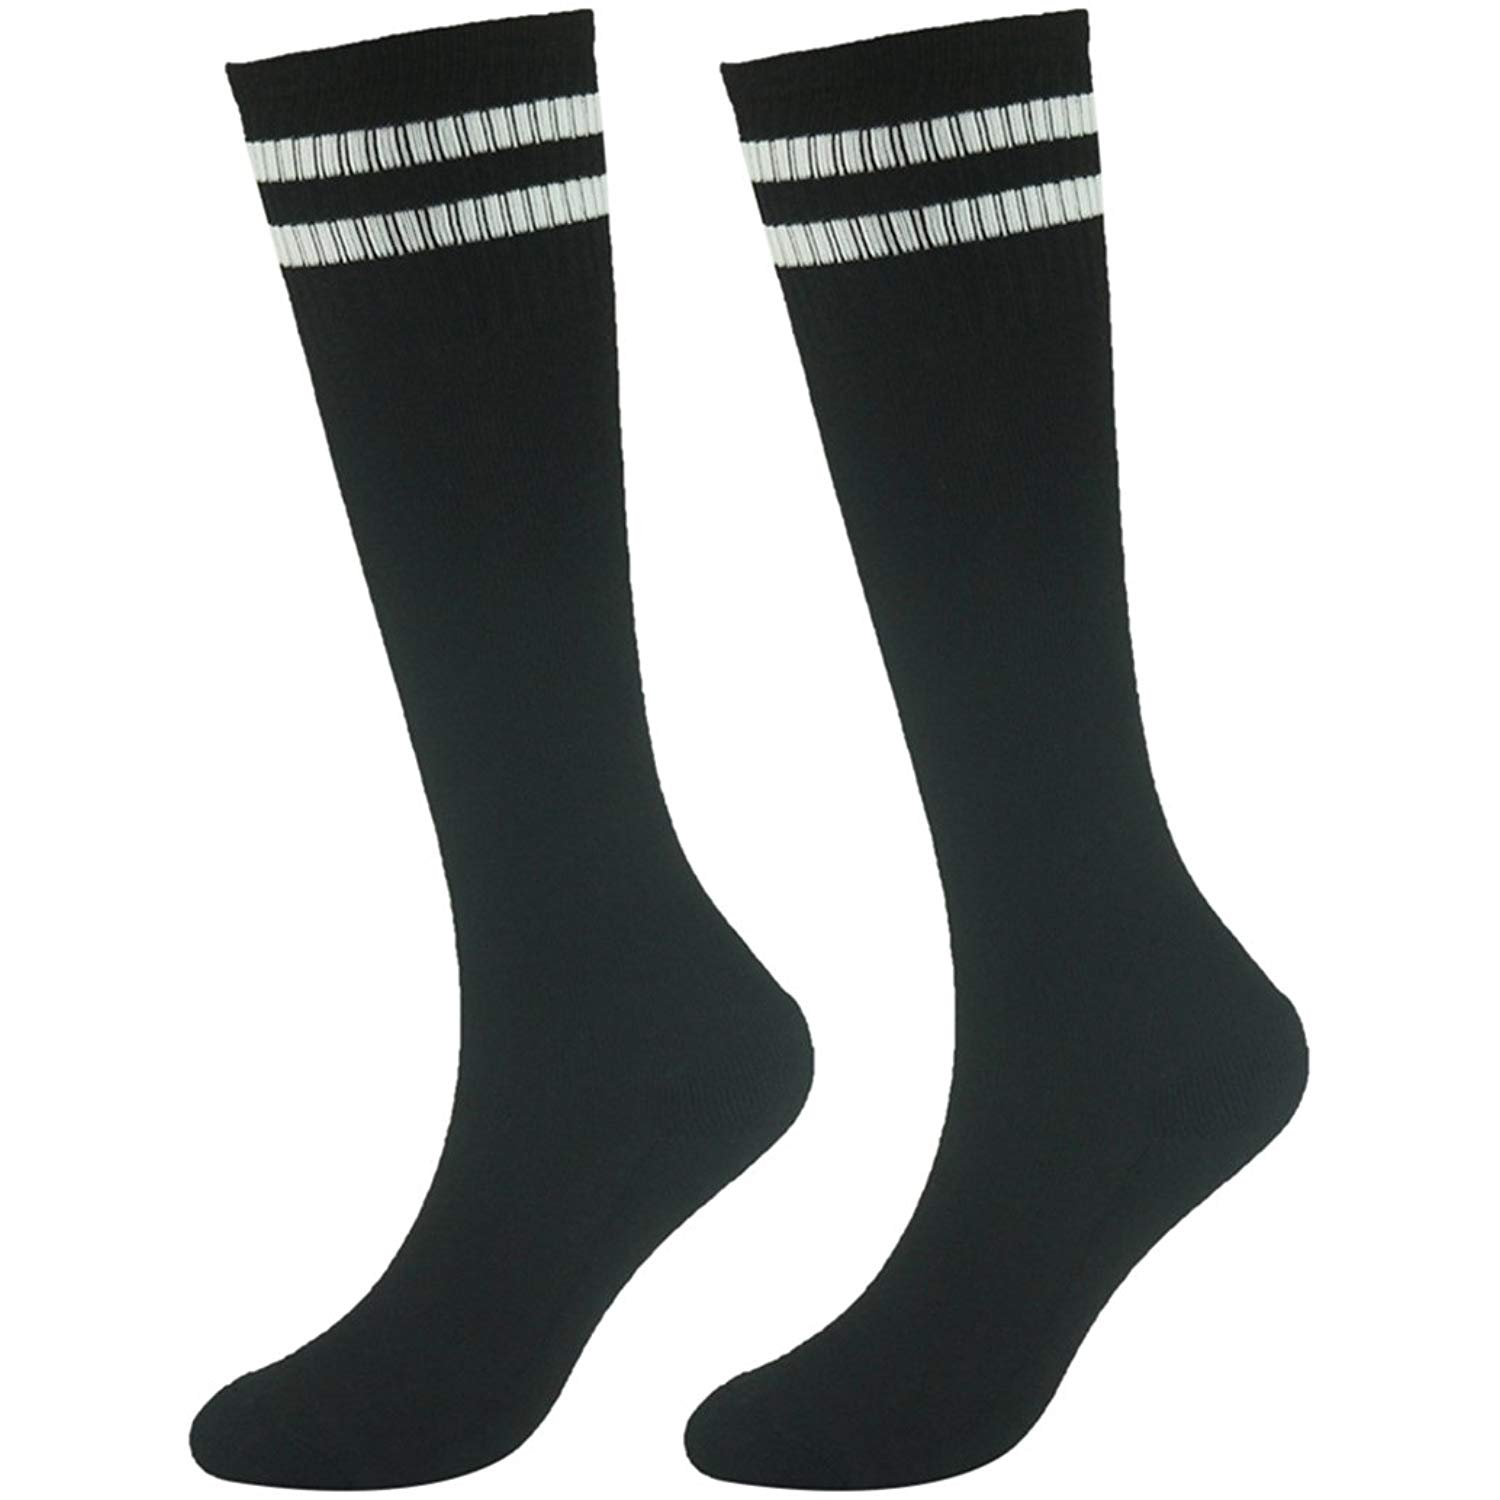 d47c0ef5f Get Quotations · Youth Soccer Socks, saillsen Knee High Sports Socks Boys  and Girls Long Tube Baseball Socks